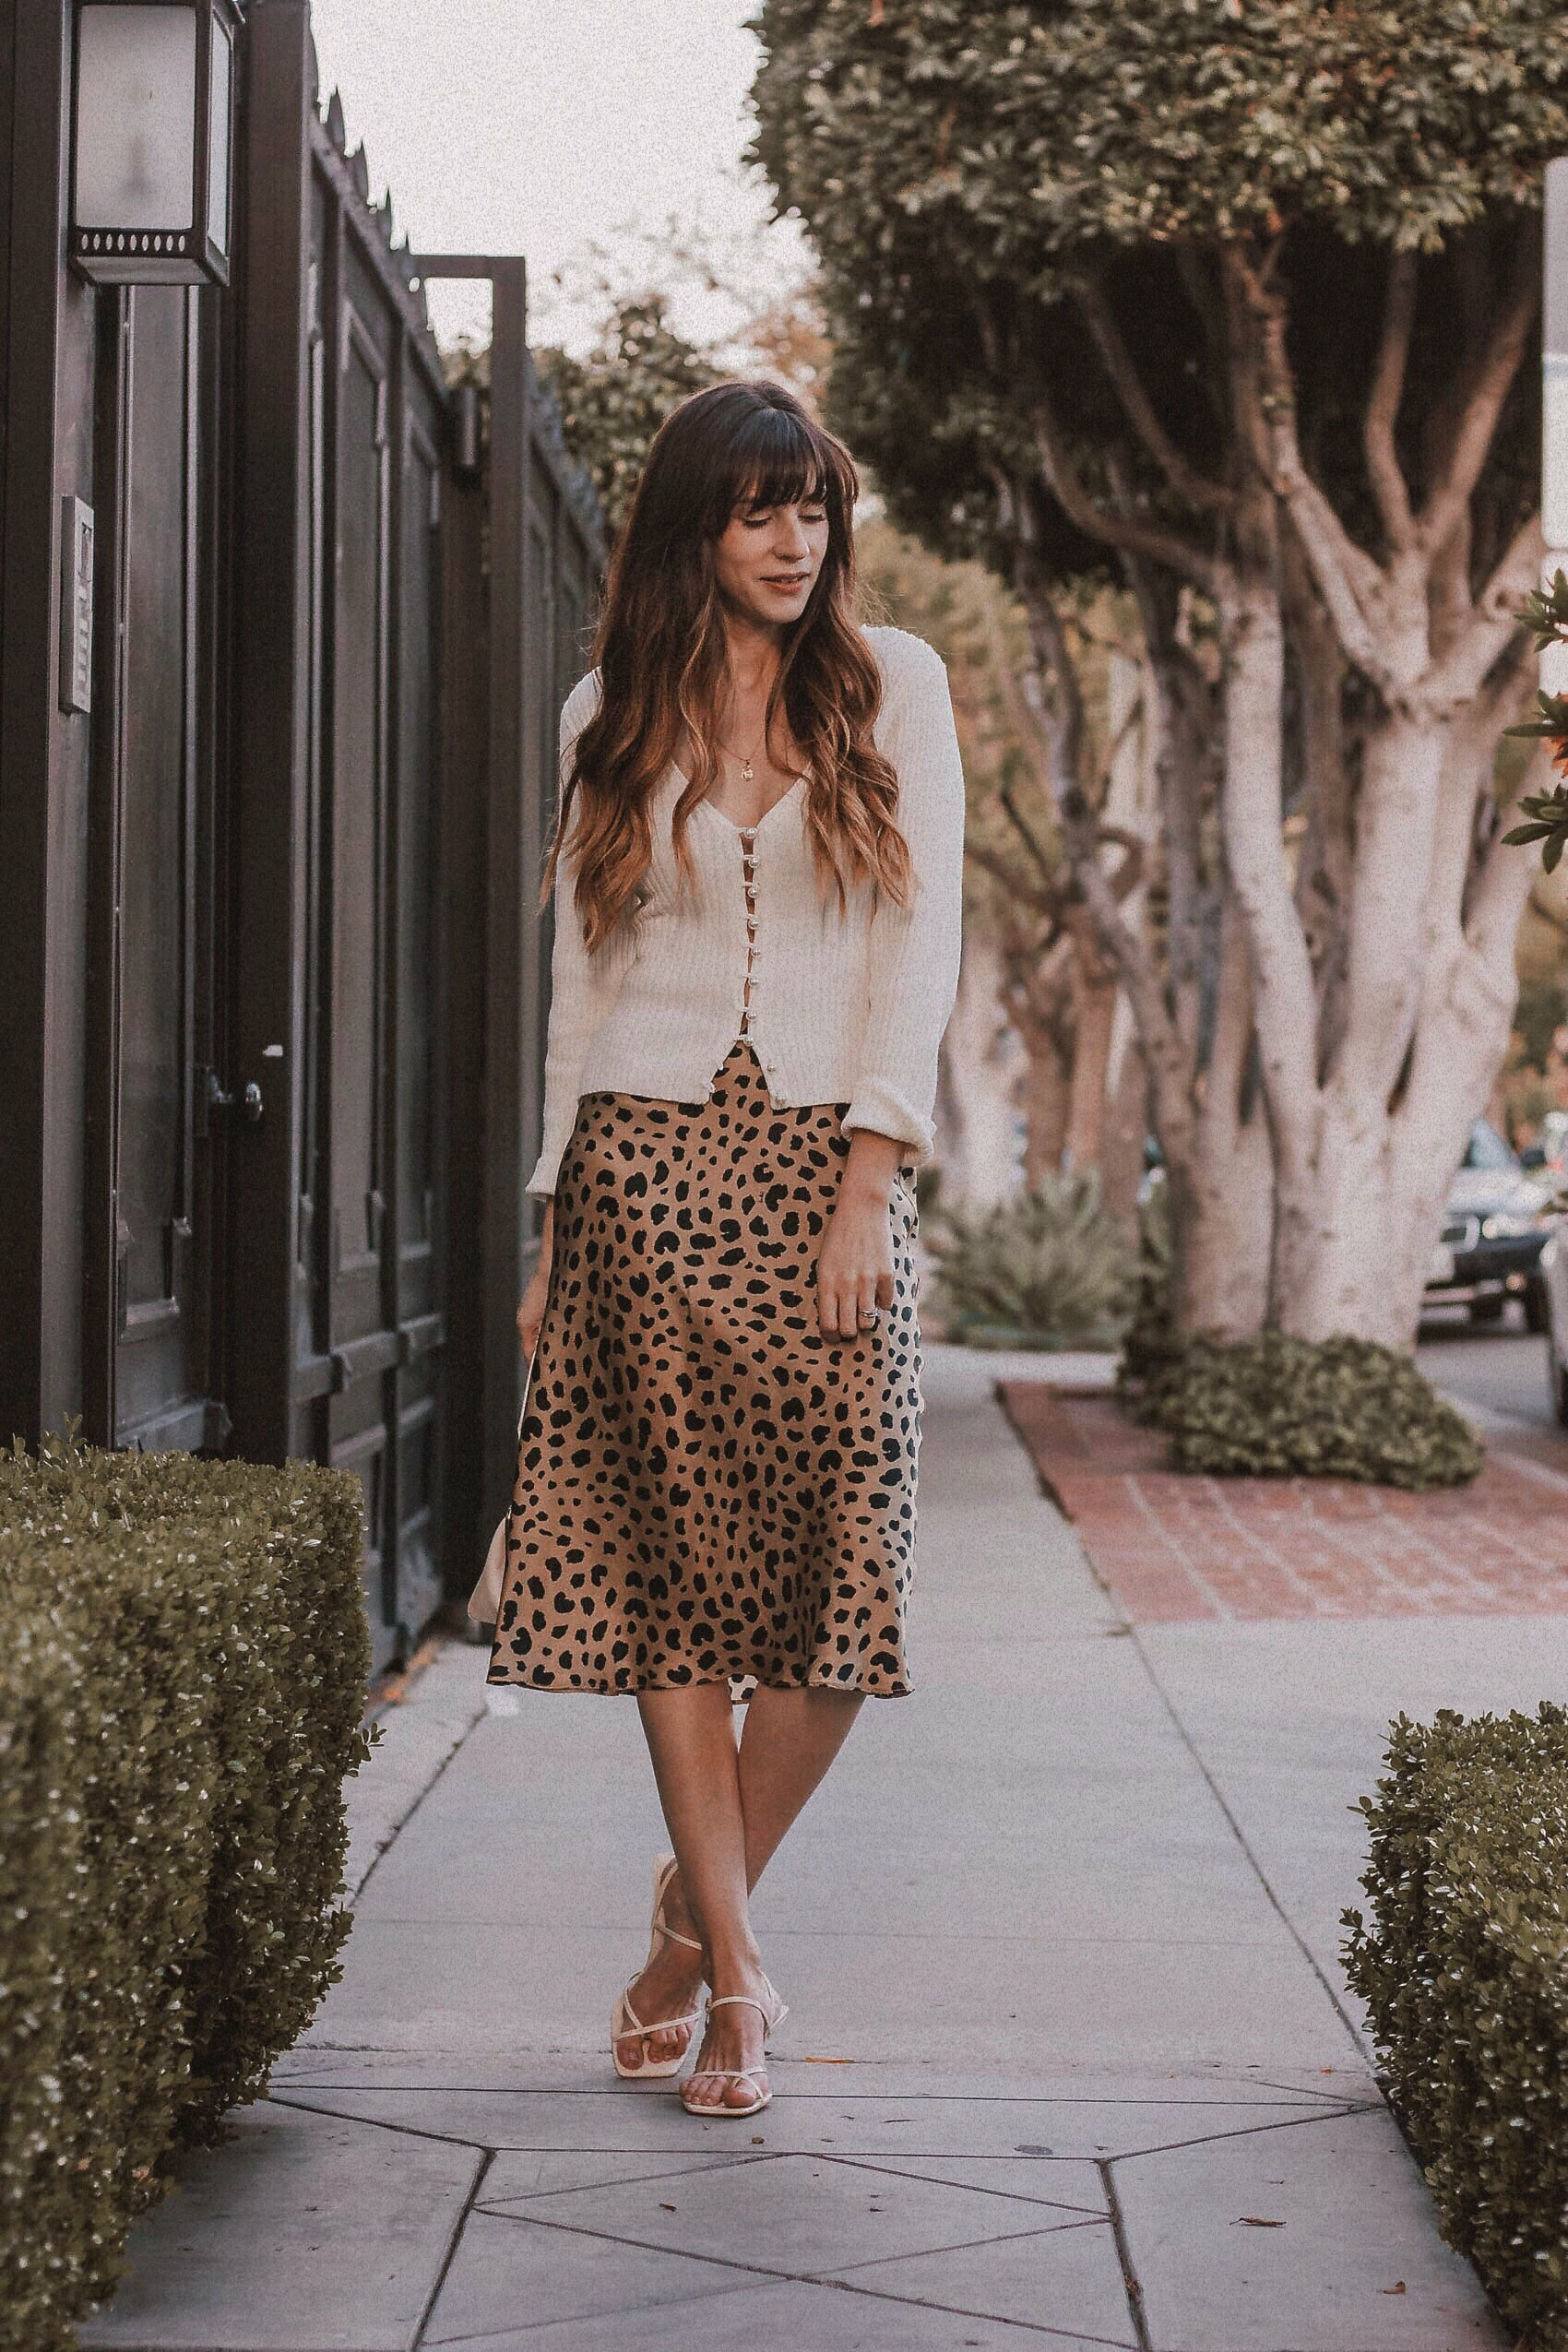 Los Angeles Fashion Blogger wearing Realisation Par Leopard Skirt, Musier Paris Sweater, and Zara heels